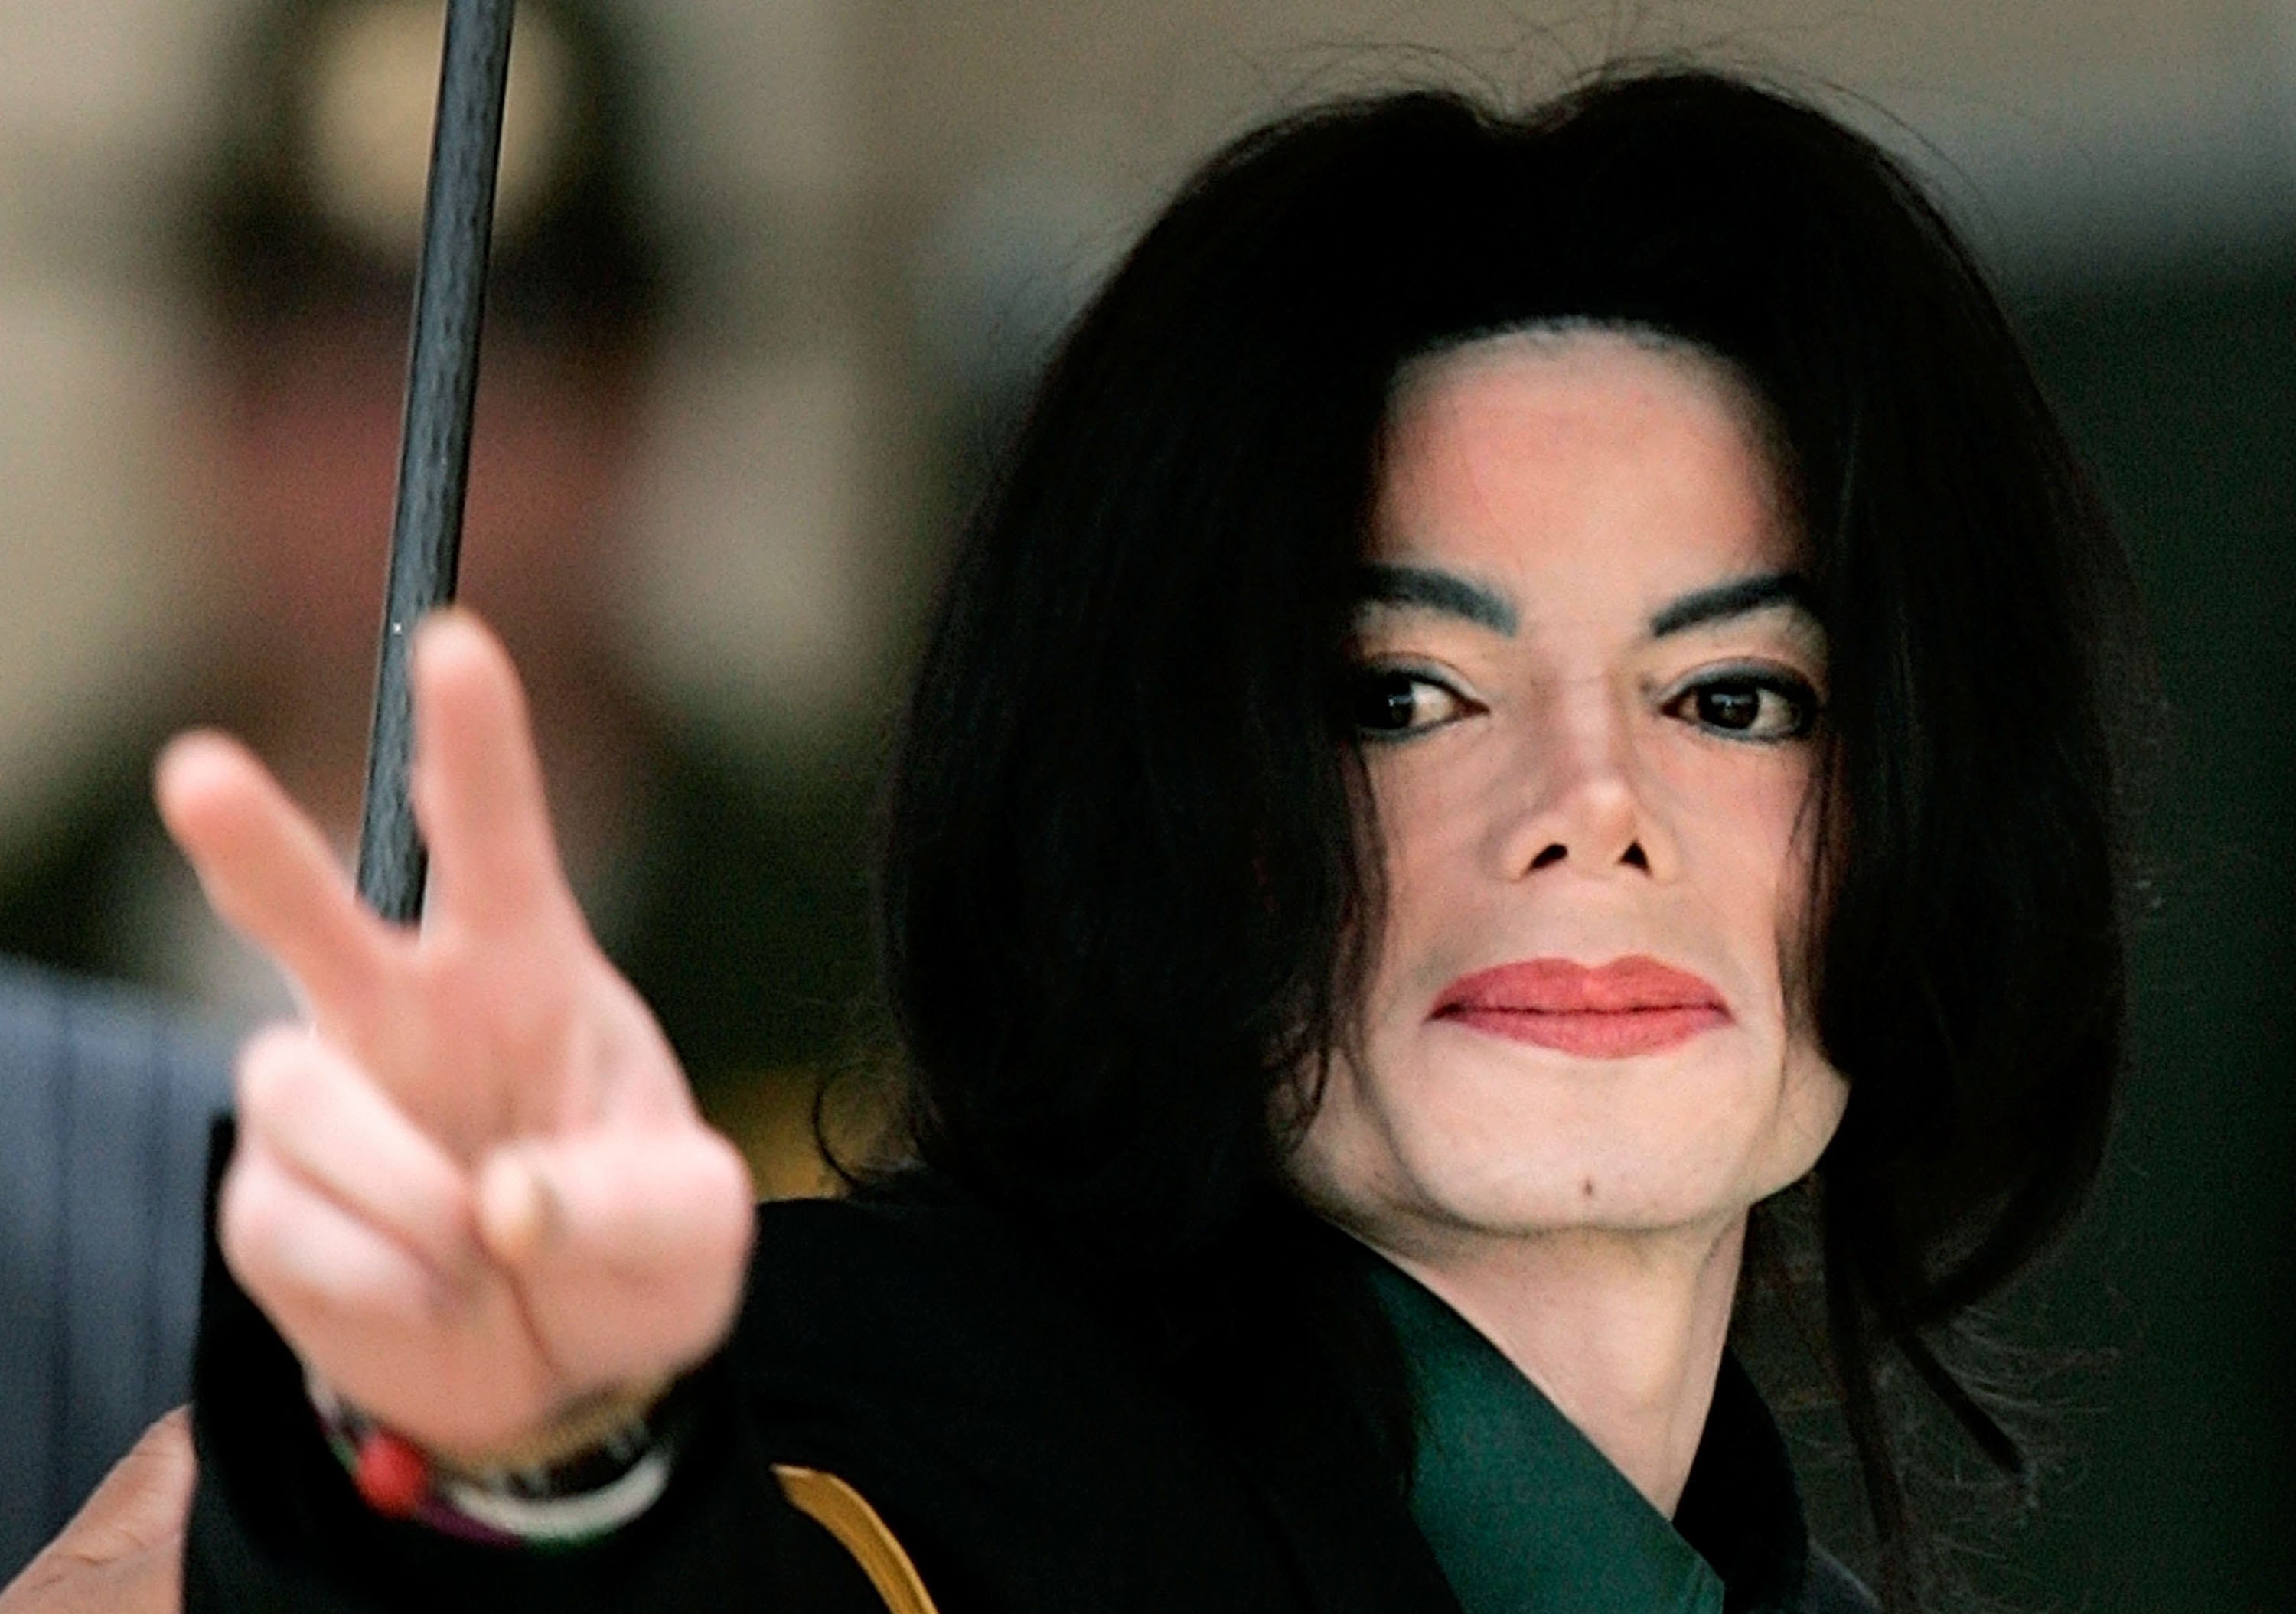 This Is What Michael Jackson Would Have Looked Like Without Surgery GettyImages 52263872